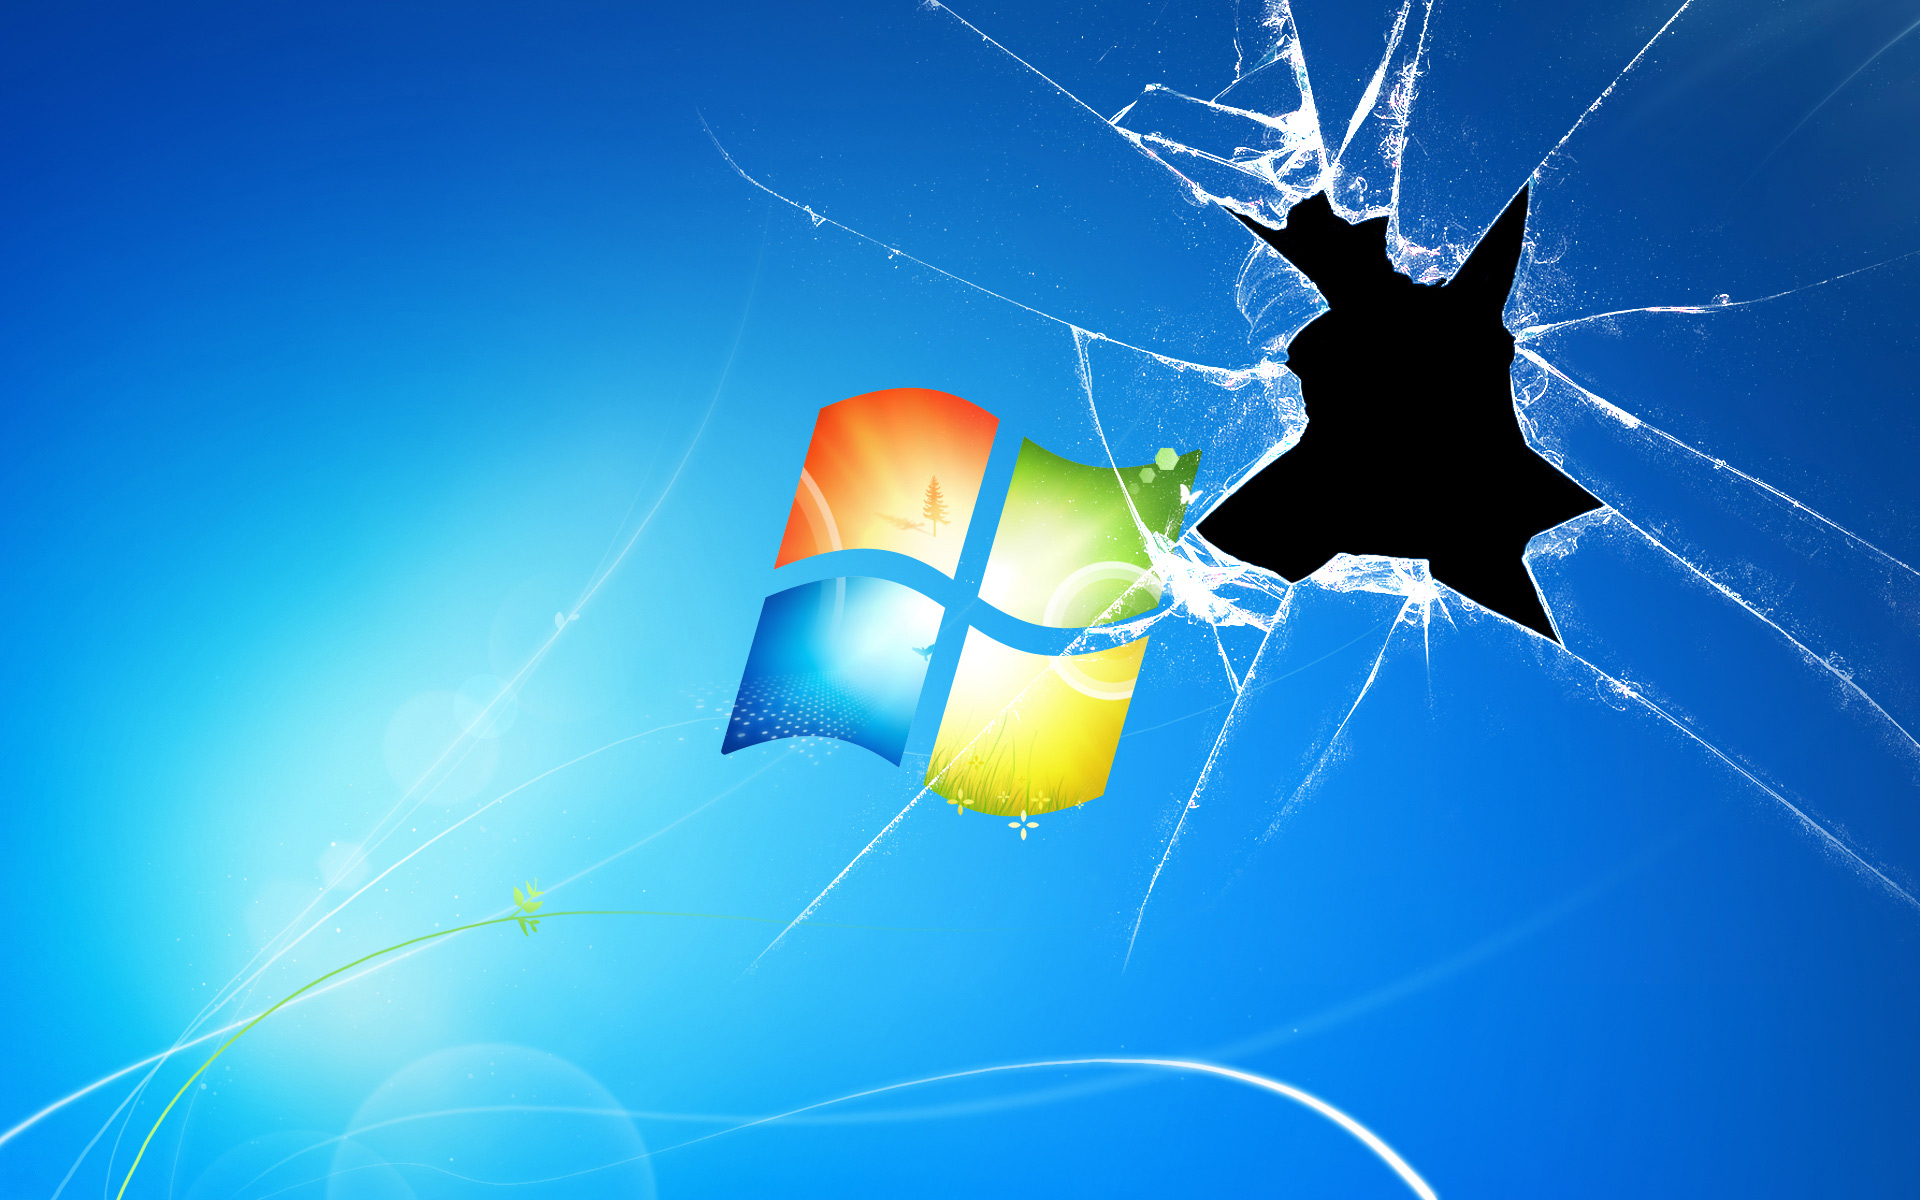 Windows Broken